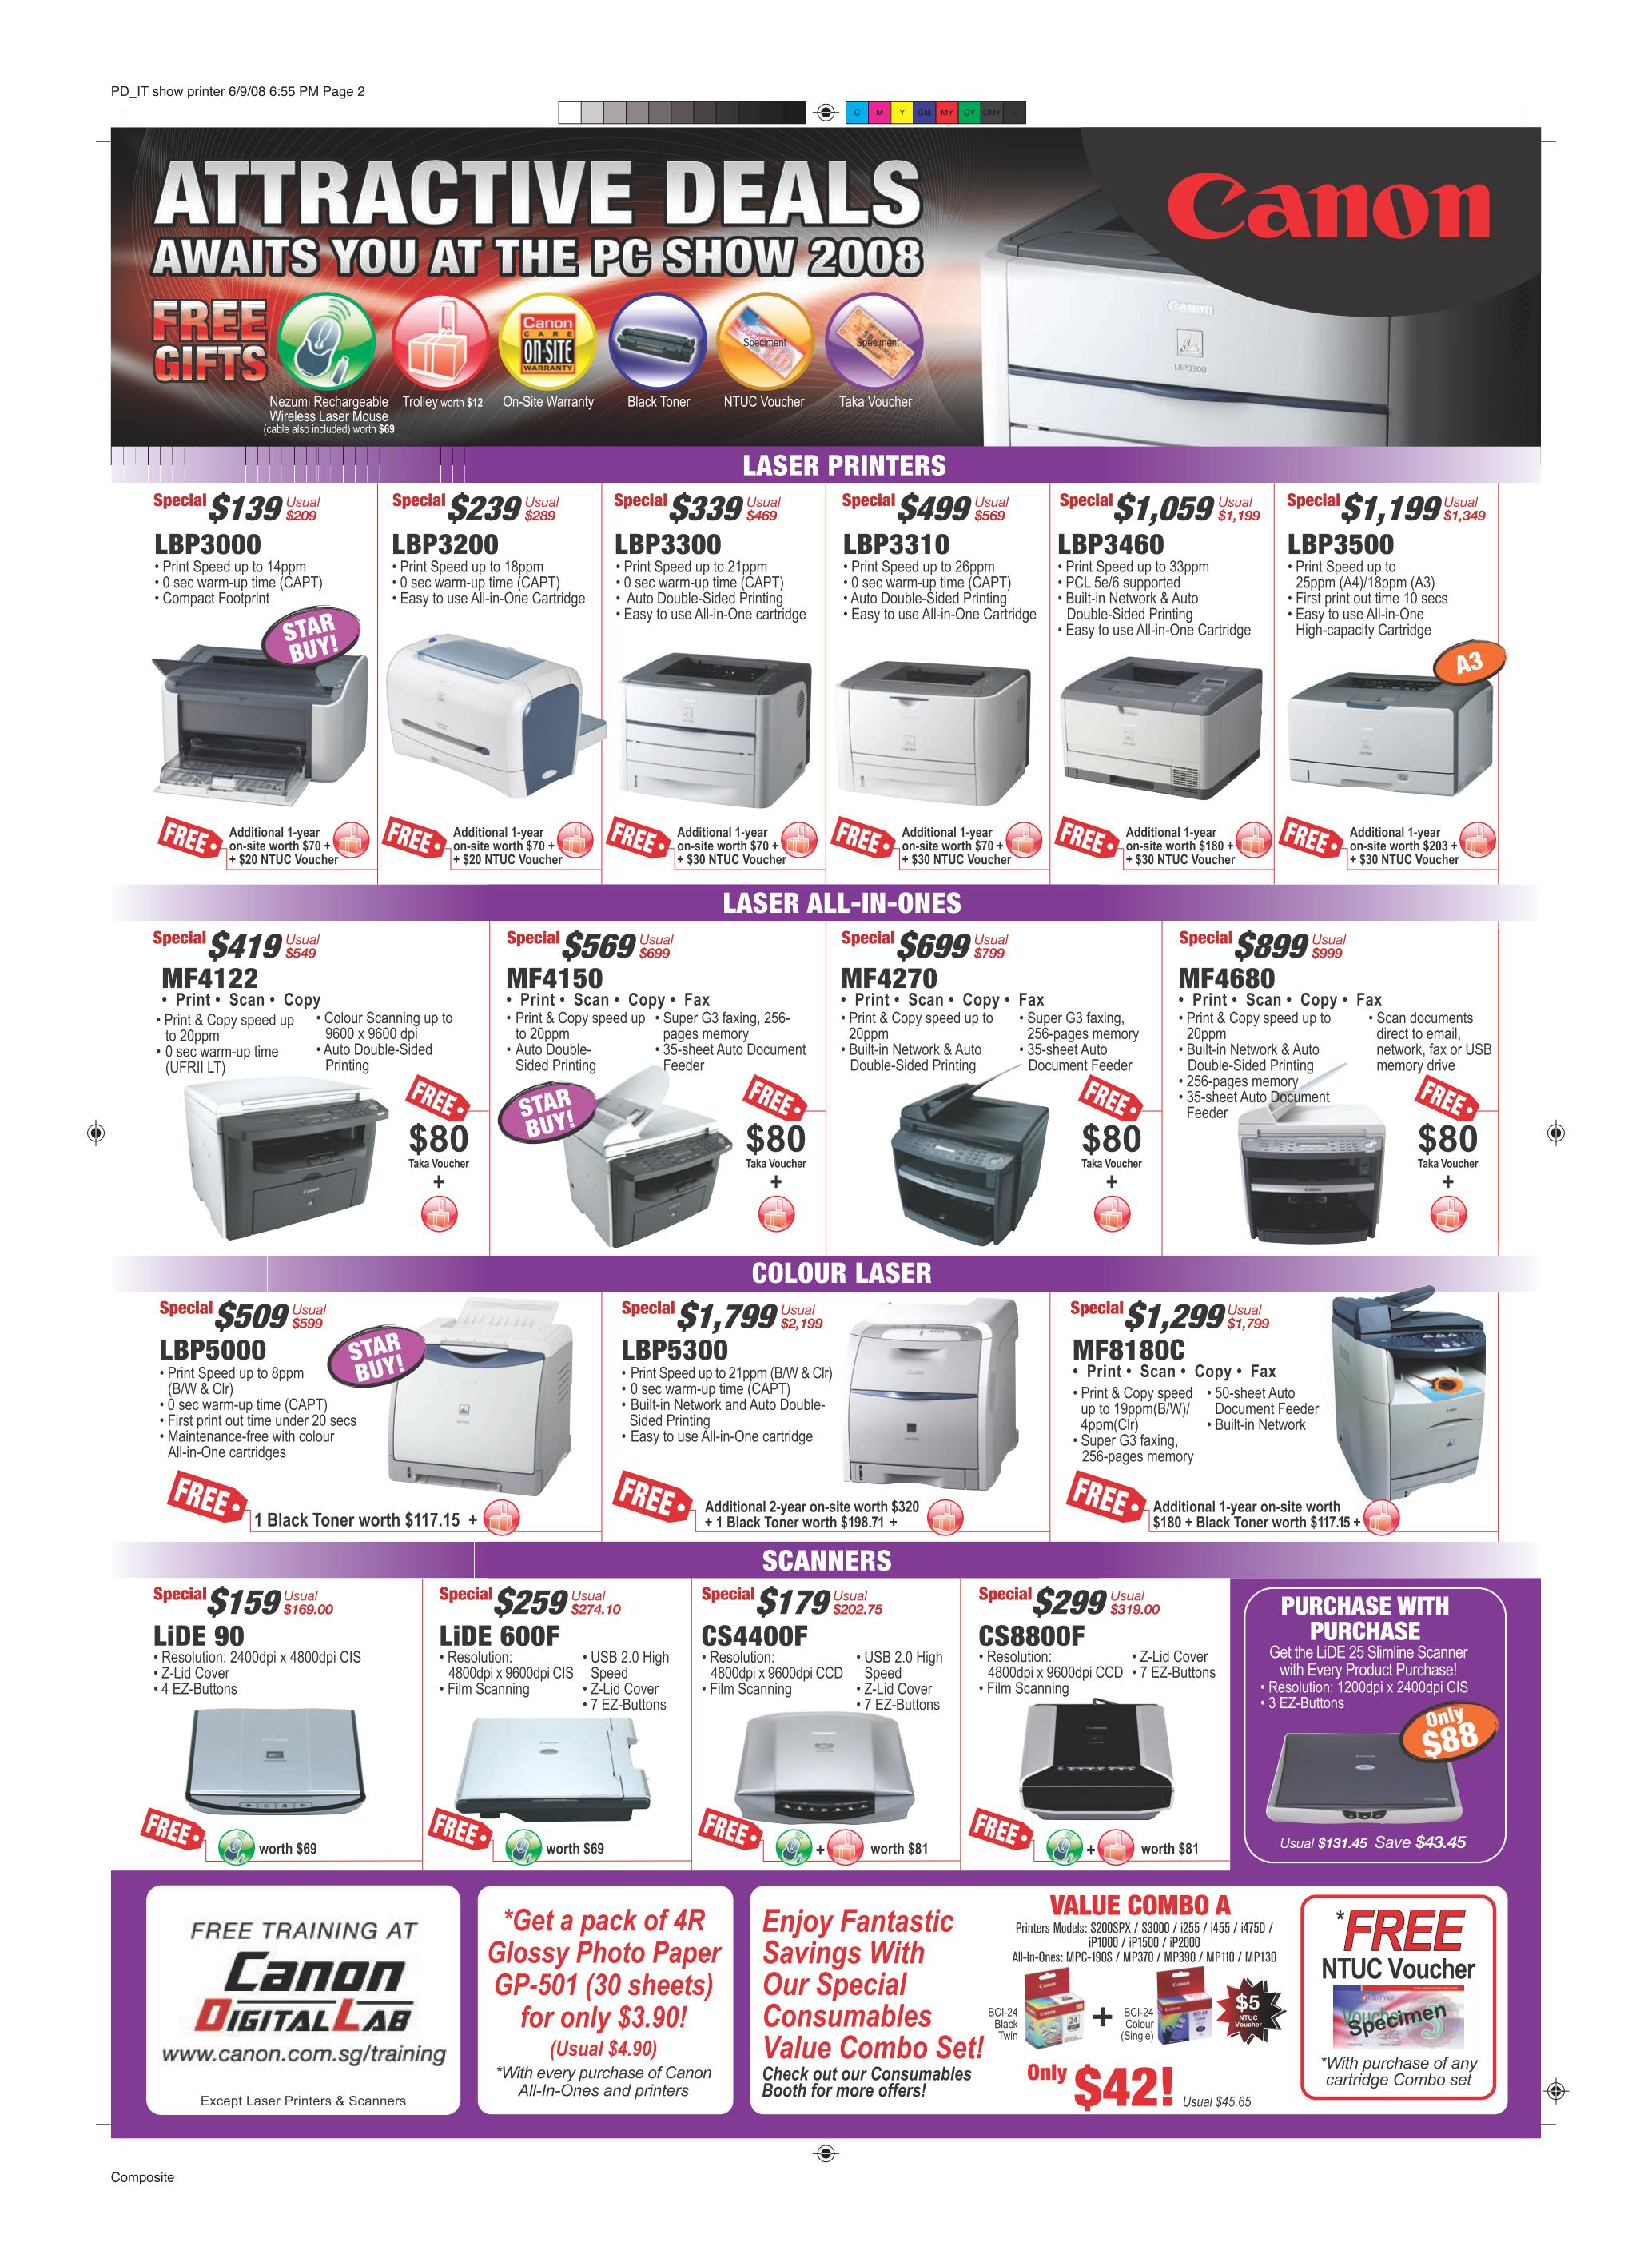 PC Show 2008 price list image brochure of Canon Printers.pdf 02